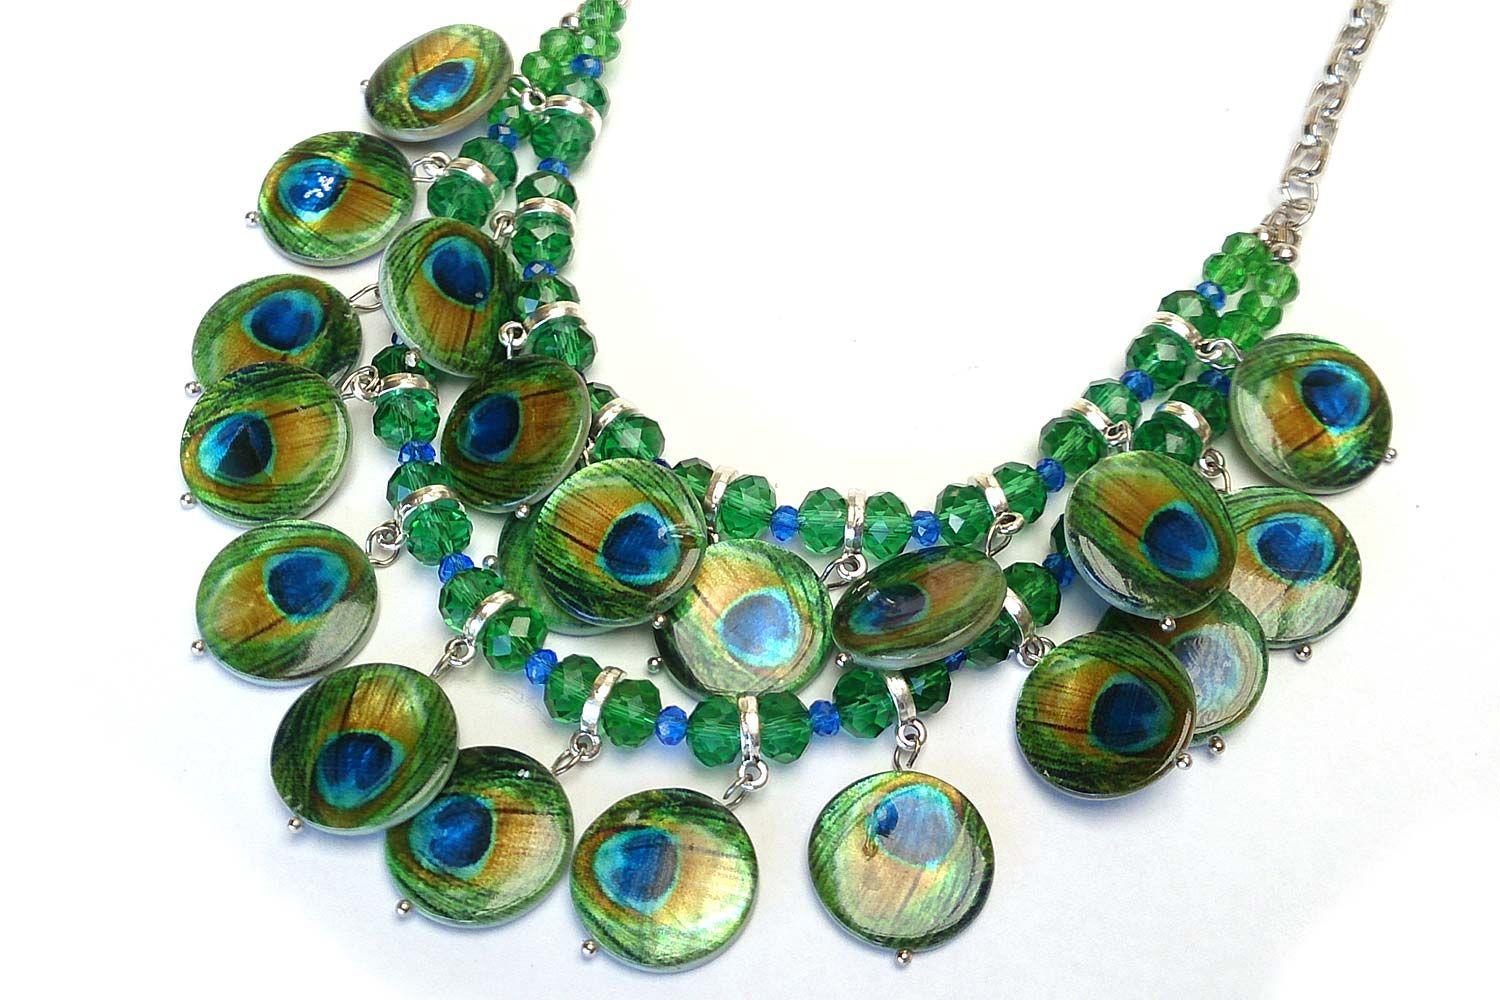 Printed shell peacock clustered necklace Designed by www.beadsonline.com.au